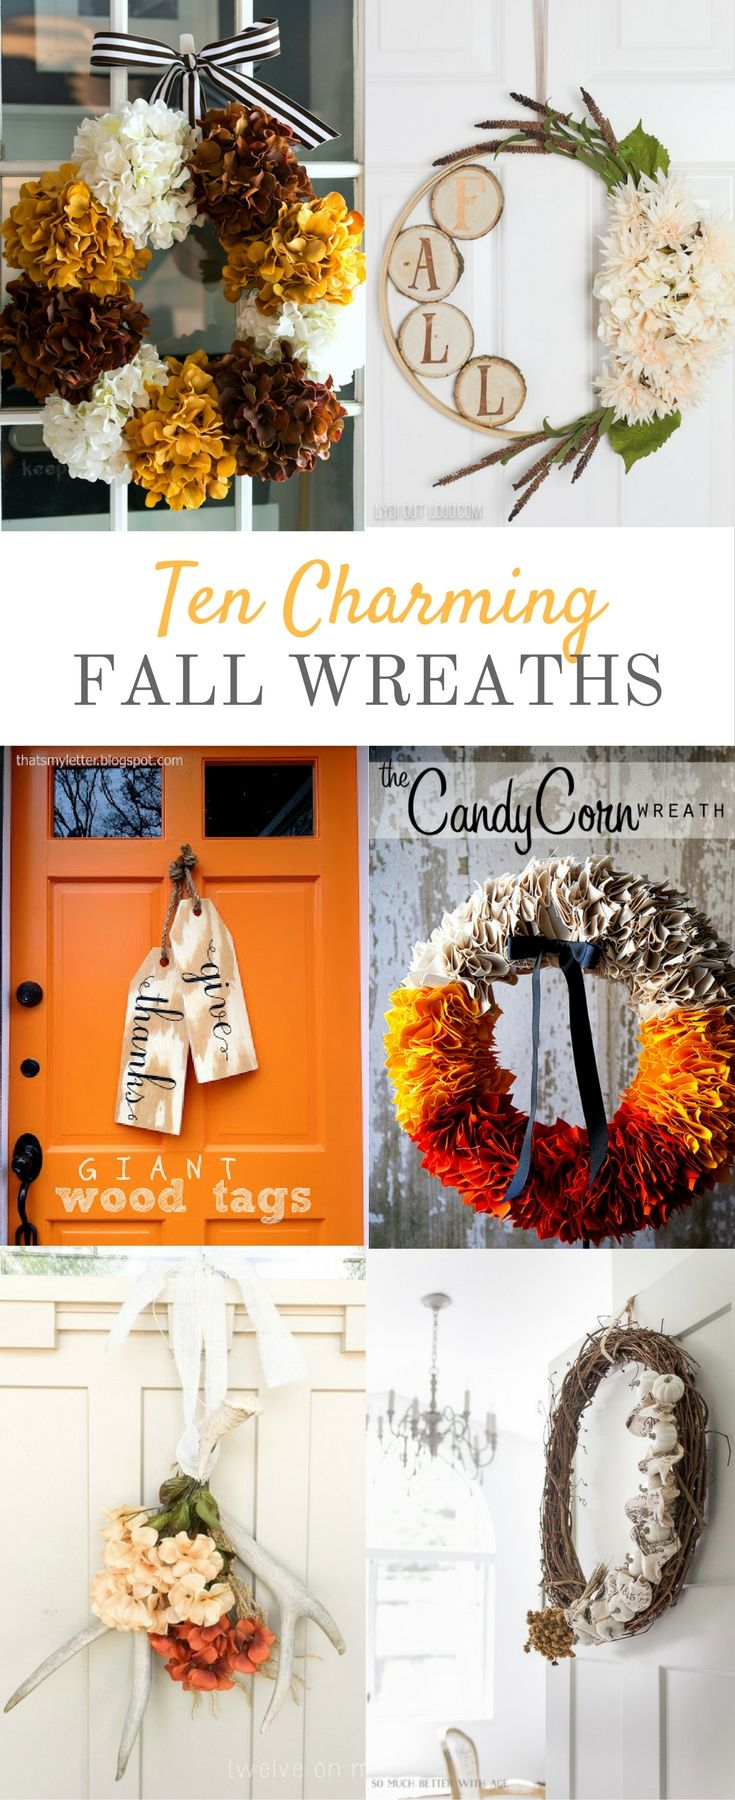 193 best DIY Fall home decor images on Pinterest | Bricolage, Fall ...